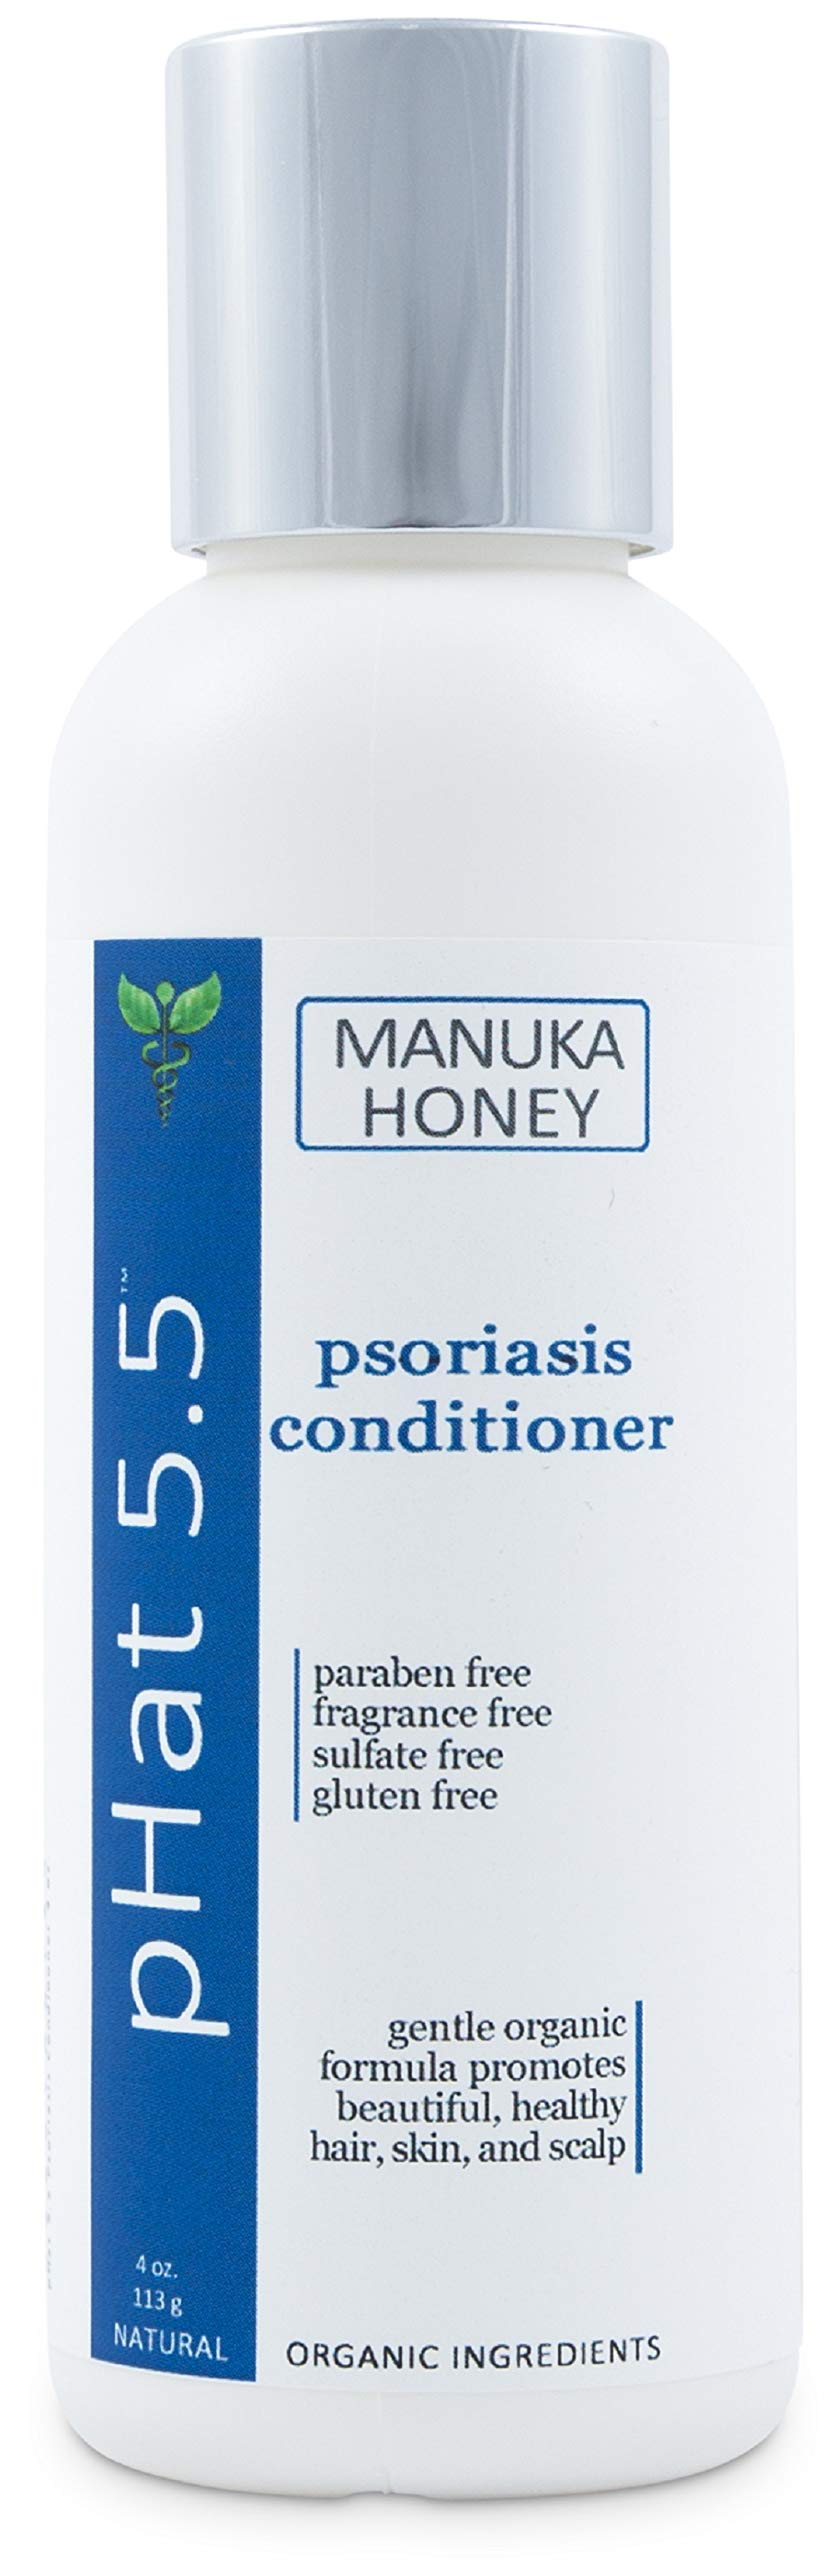 Deep Moisturizing Conditioner for Psoriasis - Natural and Organic Dry and Itchy Scalp Treatment with Coconut Oil and Manuka Honey - Sulfate & Paraben Free Conditioner and Dandruff Treatment (4 oz)